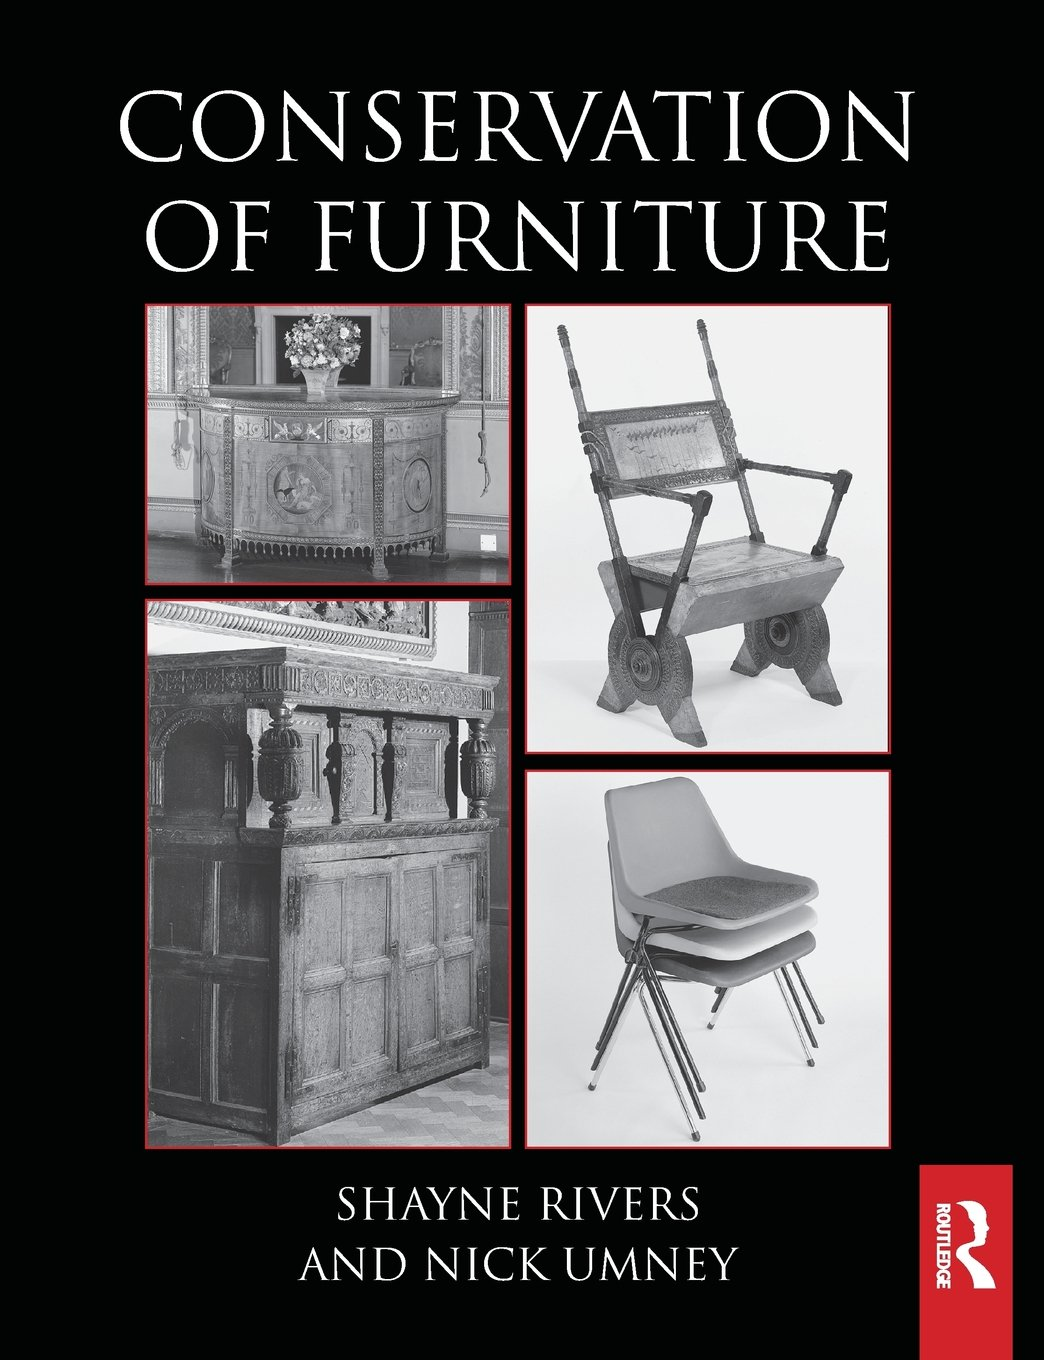 Conservation of Furniture (Routledge Series in Conservation and Museology) by Brand: Routledge